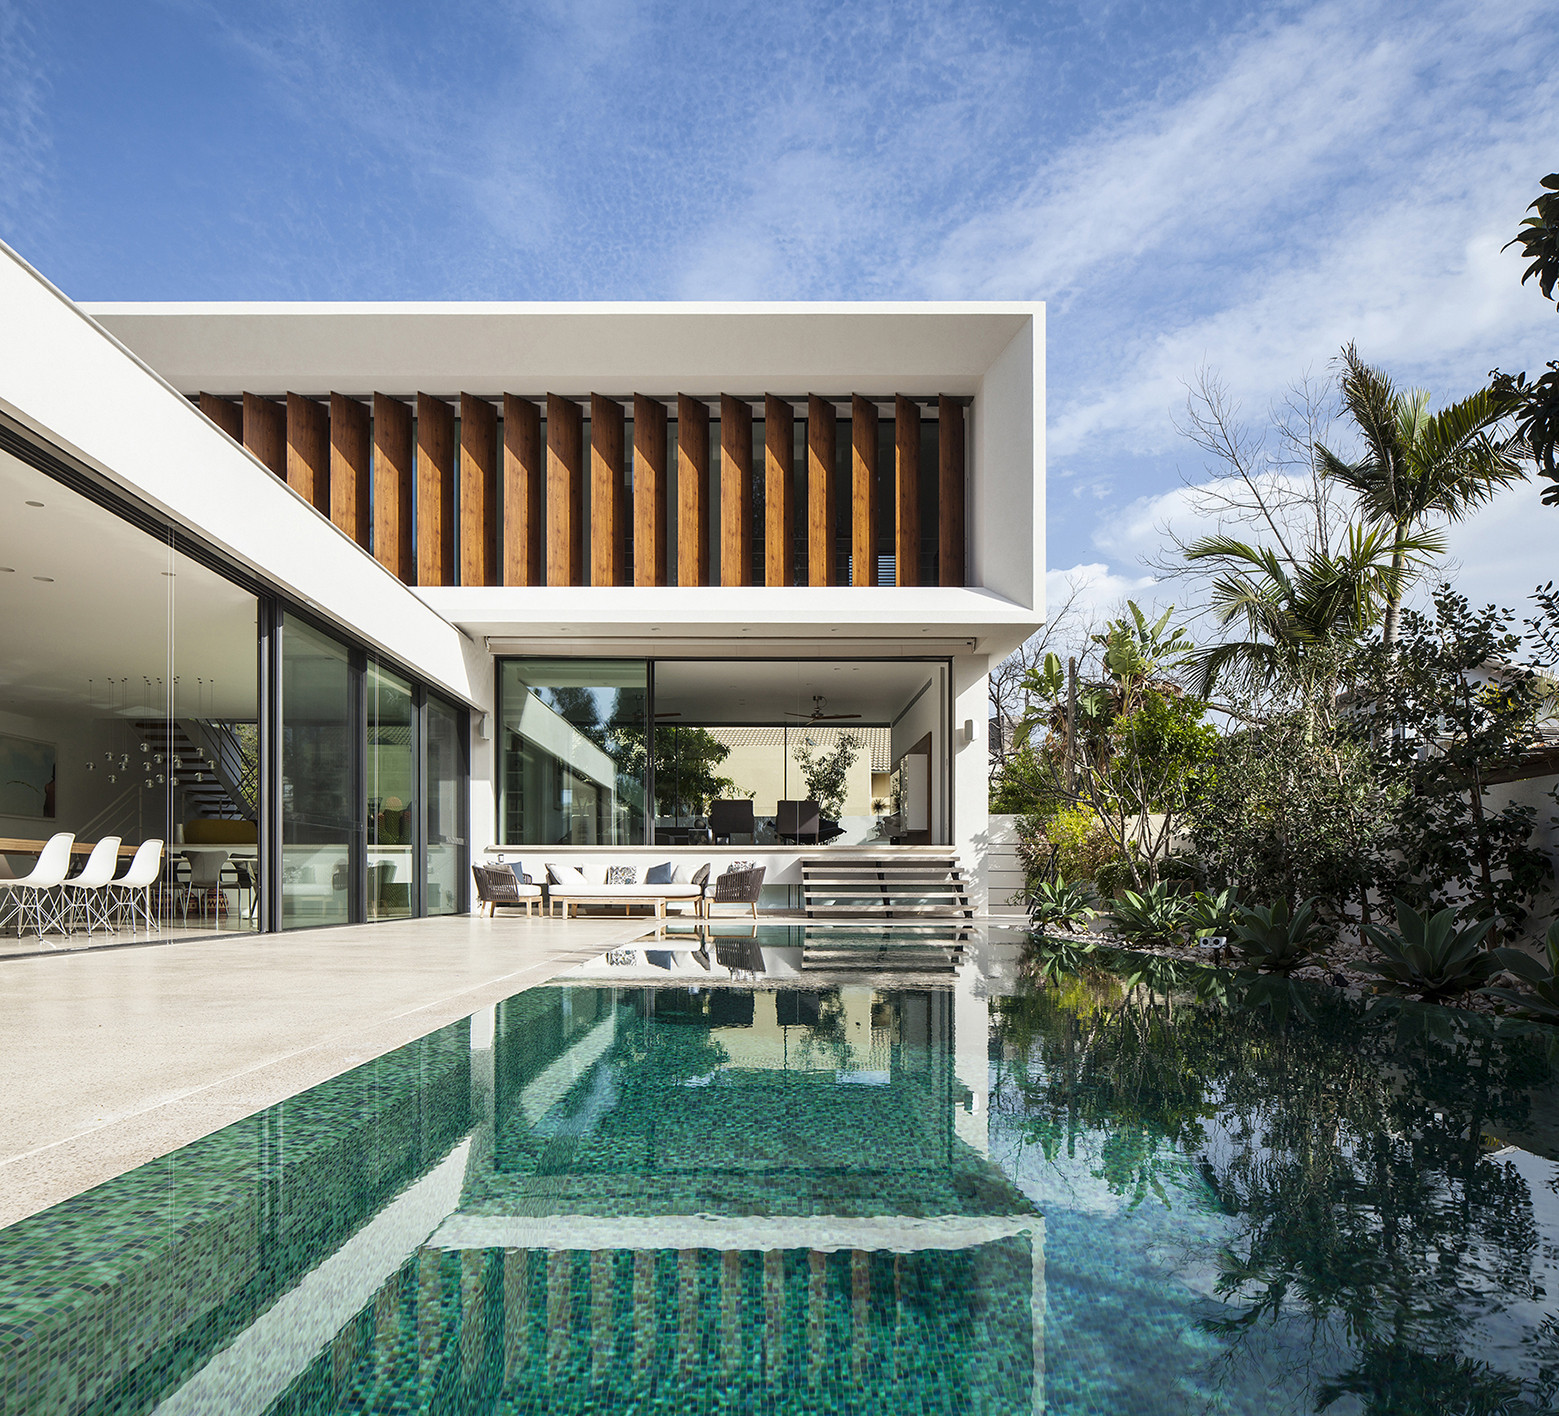 Mediterranean villa paz gersh architects archdaily for Moderne architektur villa